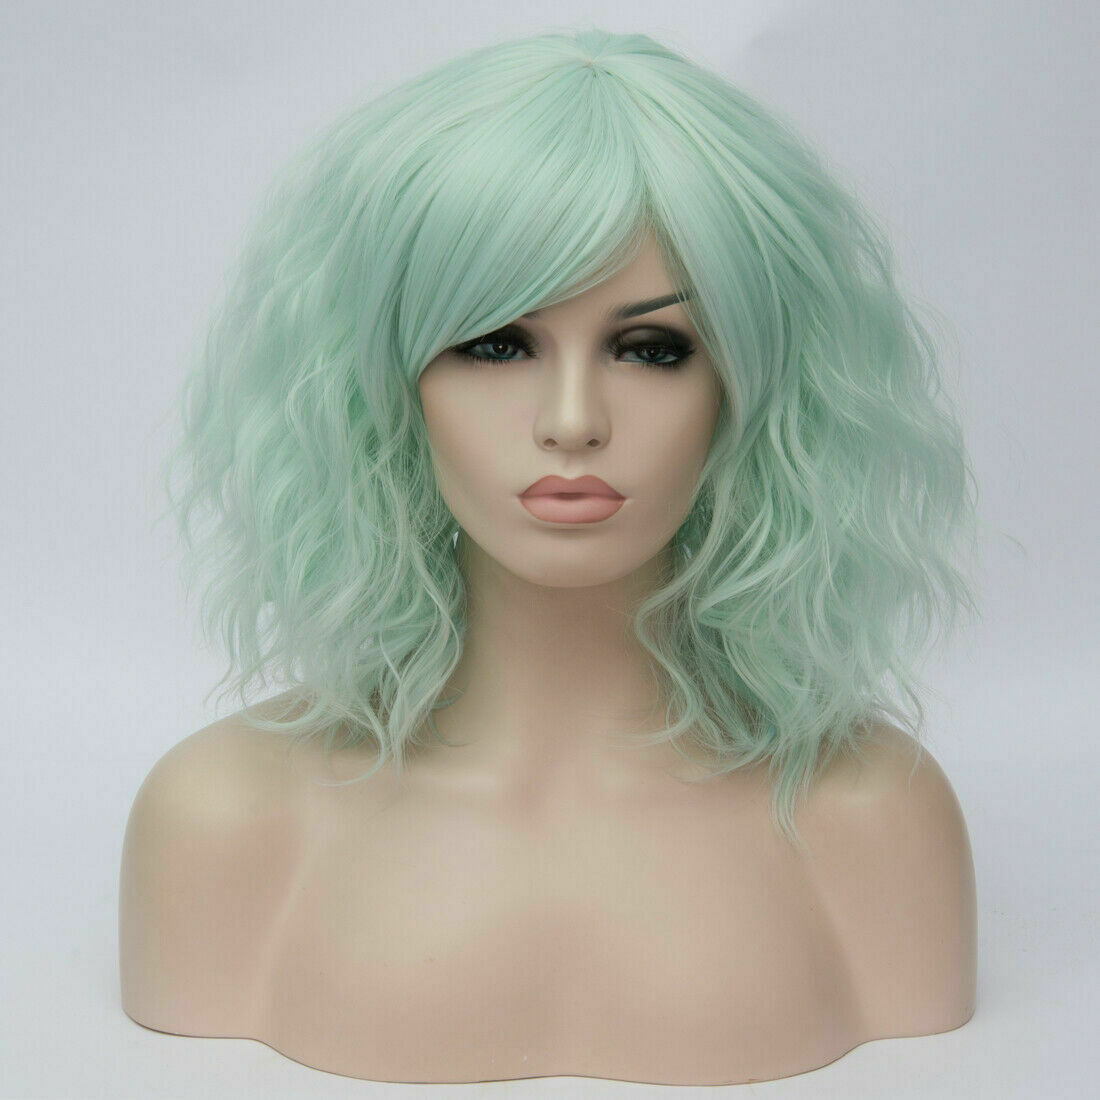 Lolita-Women-039-s-Short-Curly-Anime-Synthetic-Hair-Heat-Resistant-Cosplay-Party-Wig miniature 50